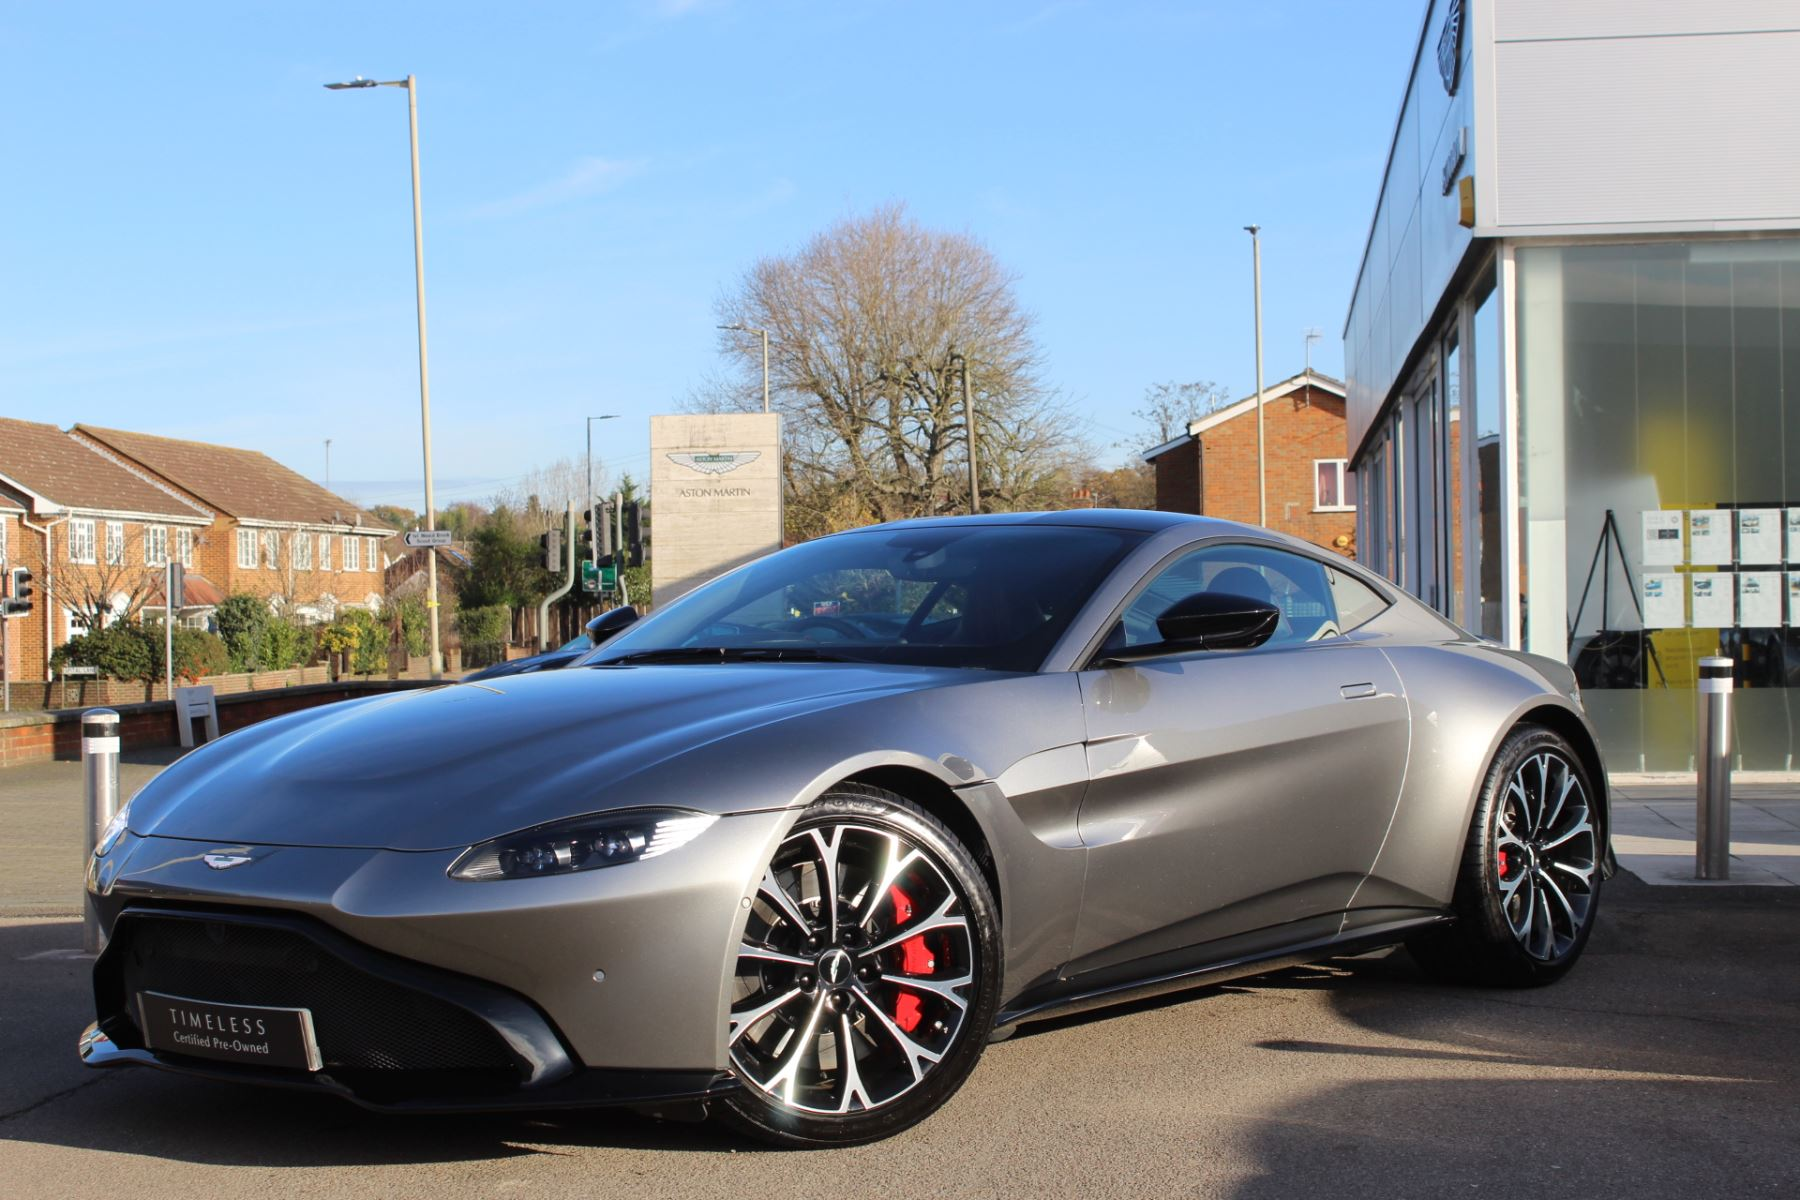 Aston Martin New Vantage 2dr ZF 8 Speed 4.0 Automatic 3 door Coupe (2018) image